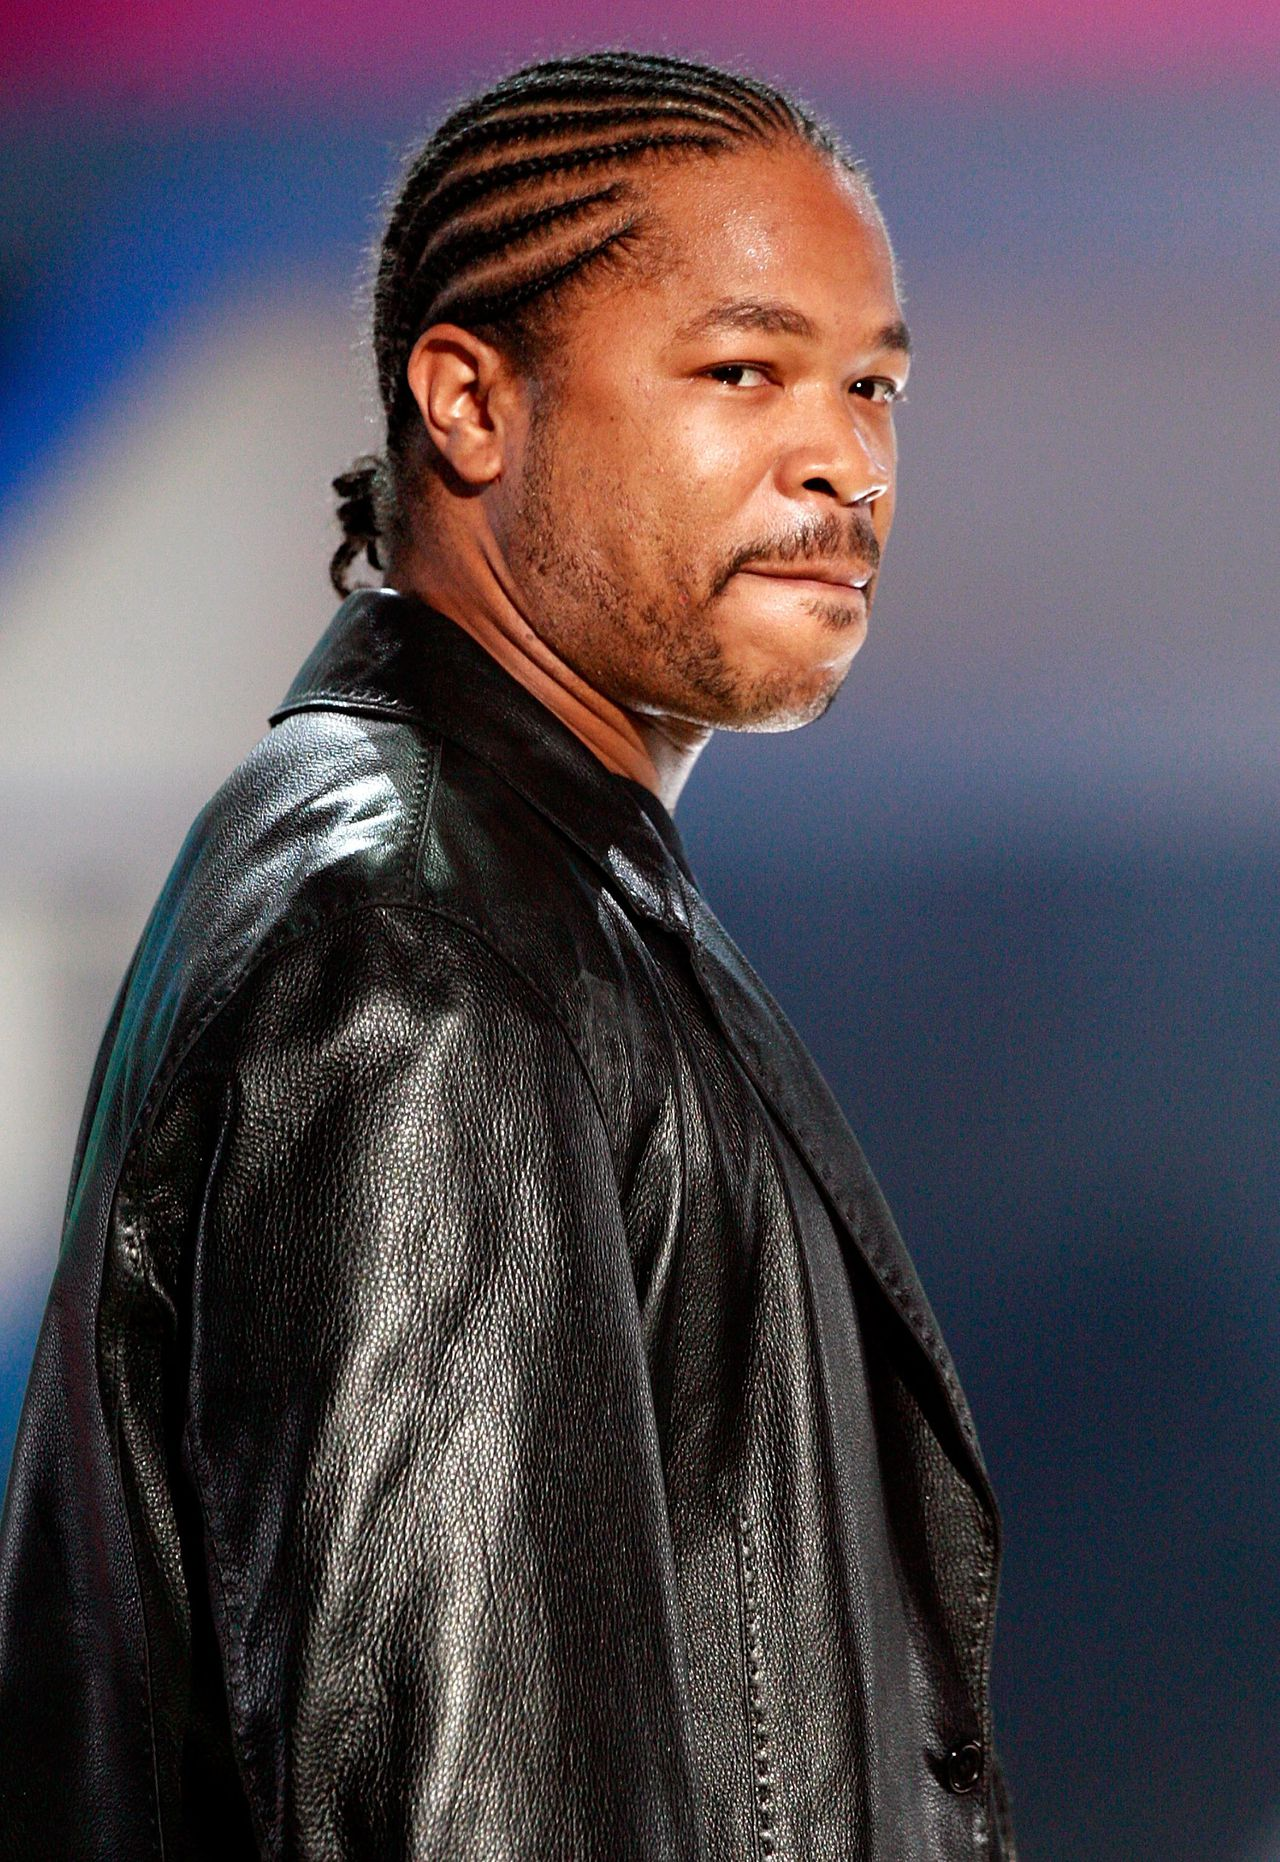 """Rapper Xzibit. Foto AFP CULVER CITY, CA - DECEMBER 02: TV personality Xzibit presents the award for Big """"It"""" Girl onstage during the VH1 Big in '06 Awards held at Sony Studios on December 2, 2006 in Culver City, California. (Photo by Kevin Winter/Getty Images) *** Local Caption *** Xzibit"""